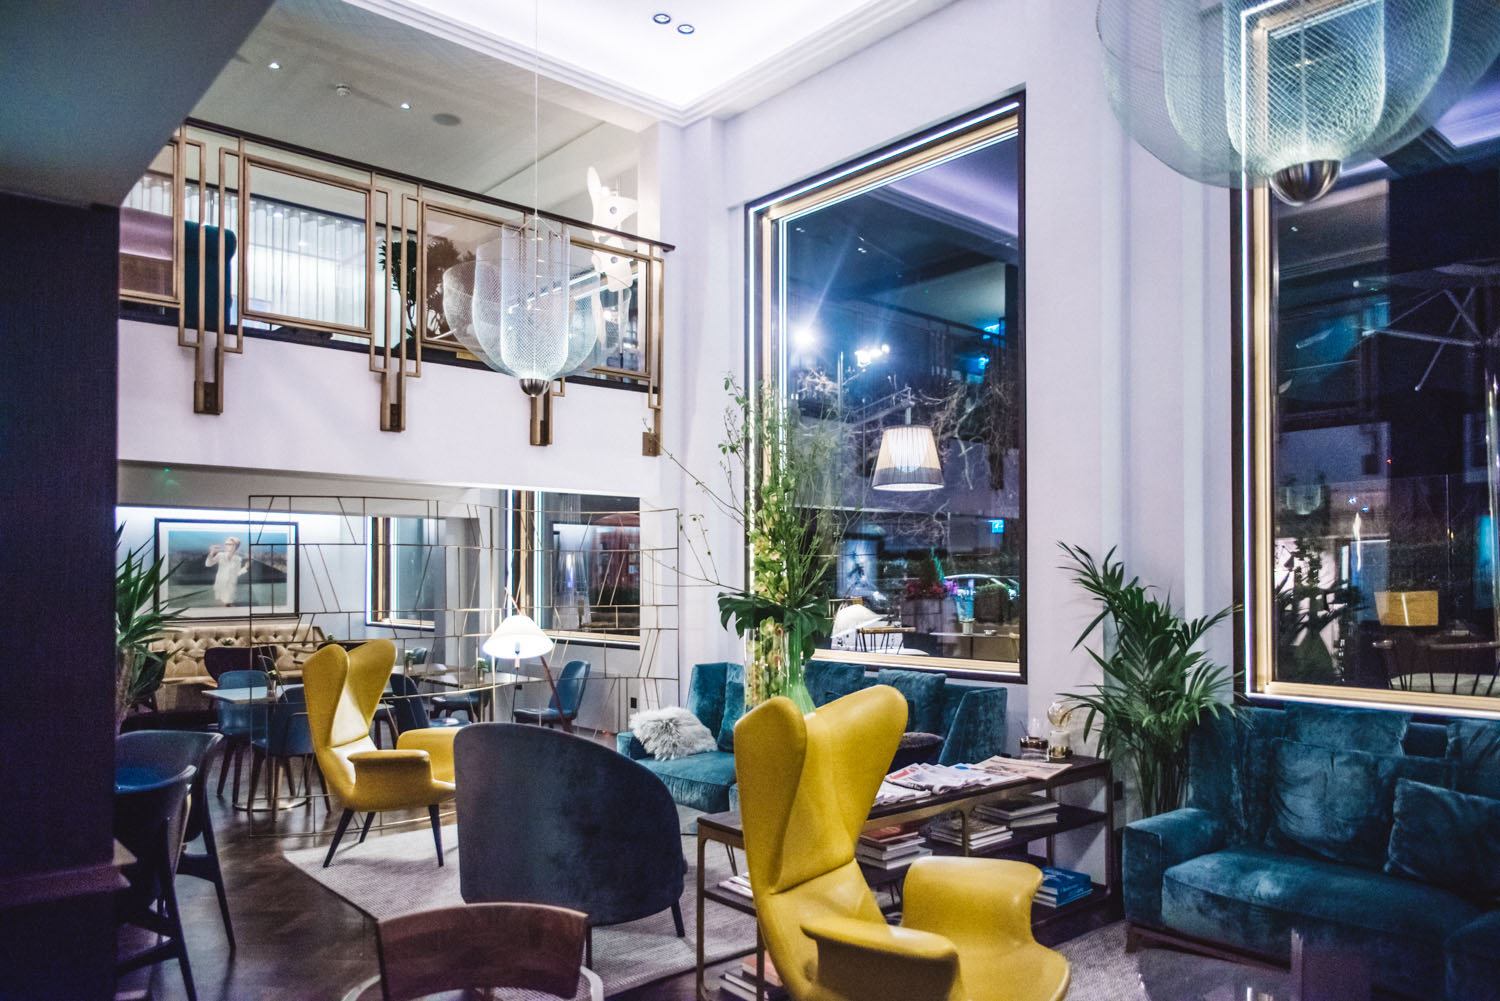 Interior at The Athenaeum - Five-star luxury hotel in the heart of Mayfair